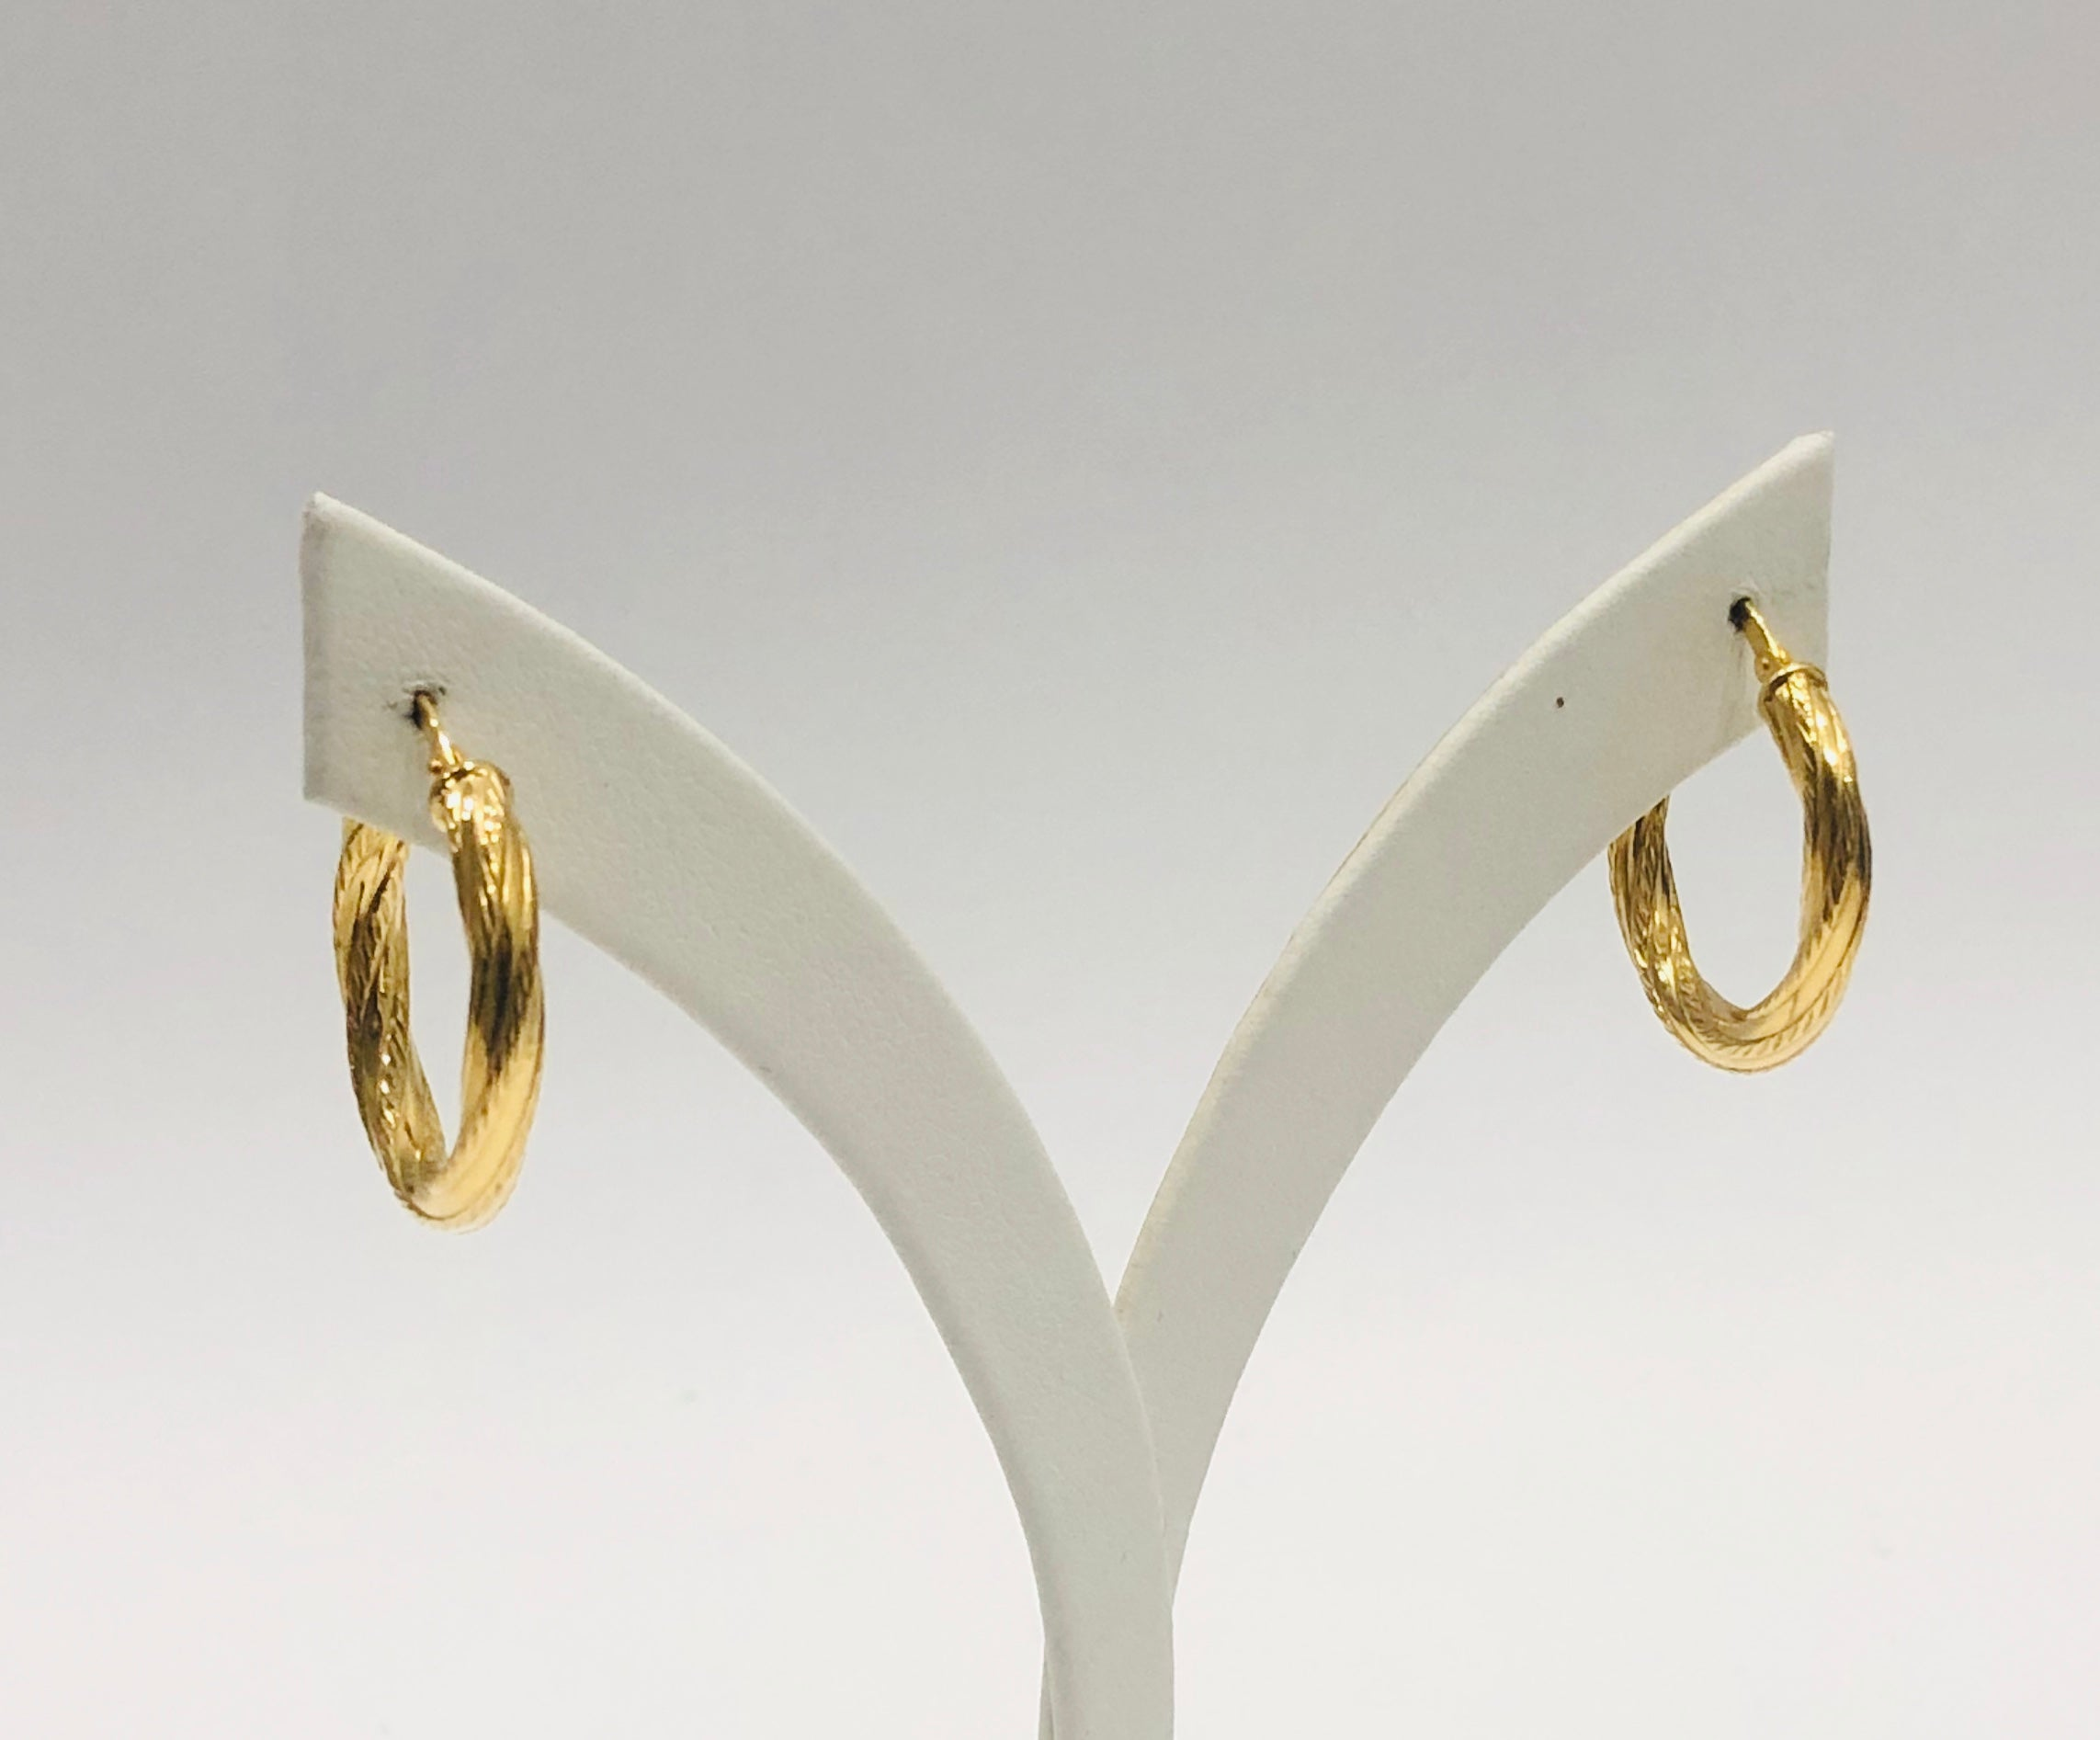 9ct Yellow Gold Silver Filled Twist Design 21mm Hoop Earrings